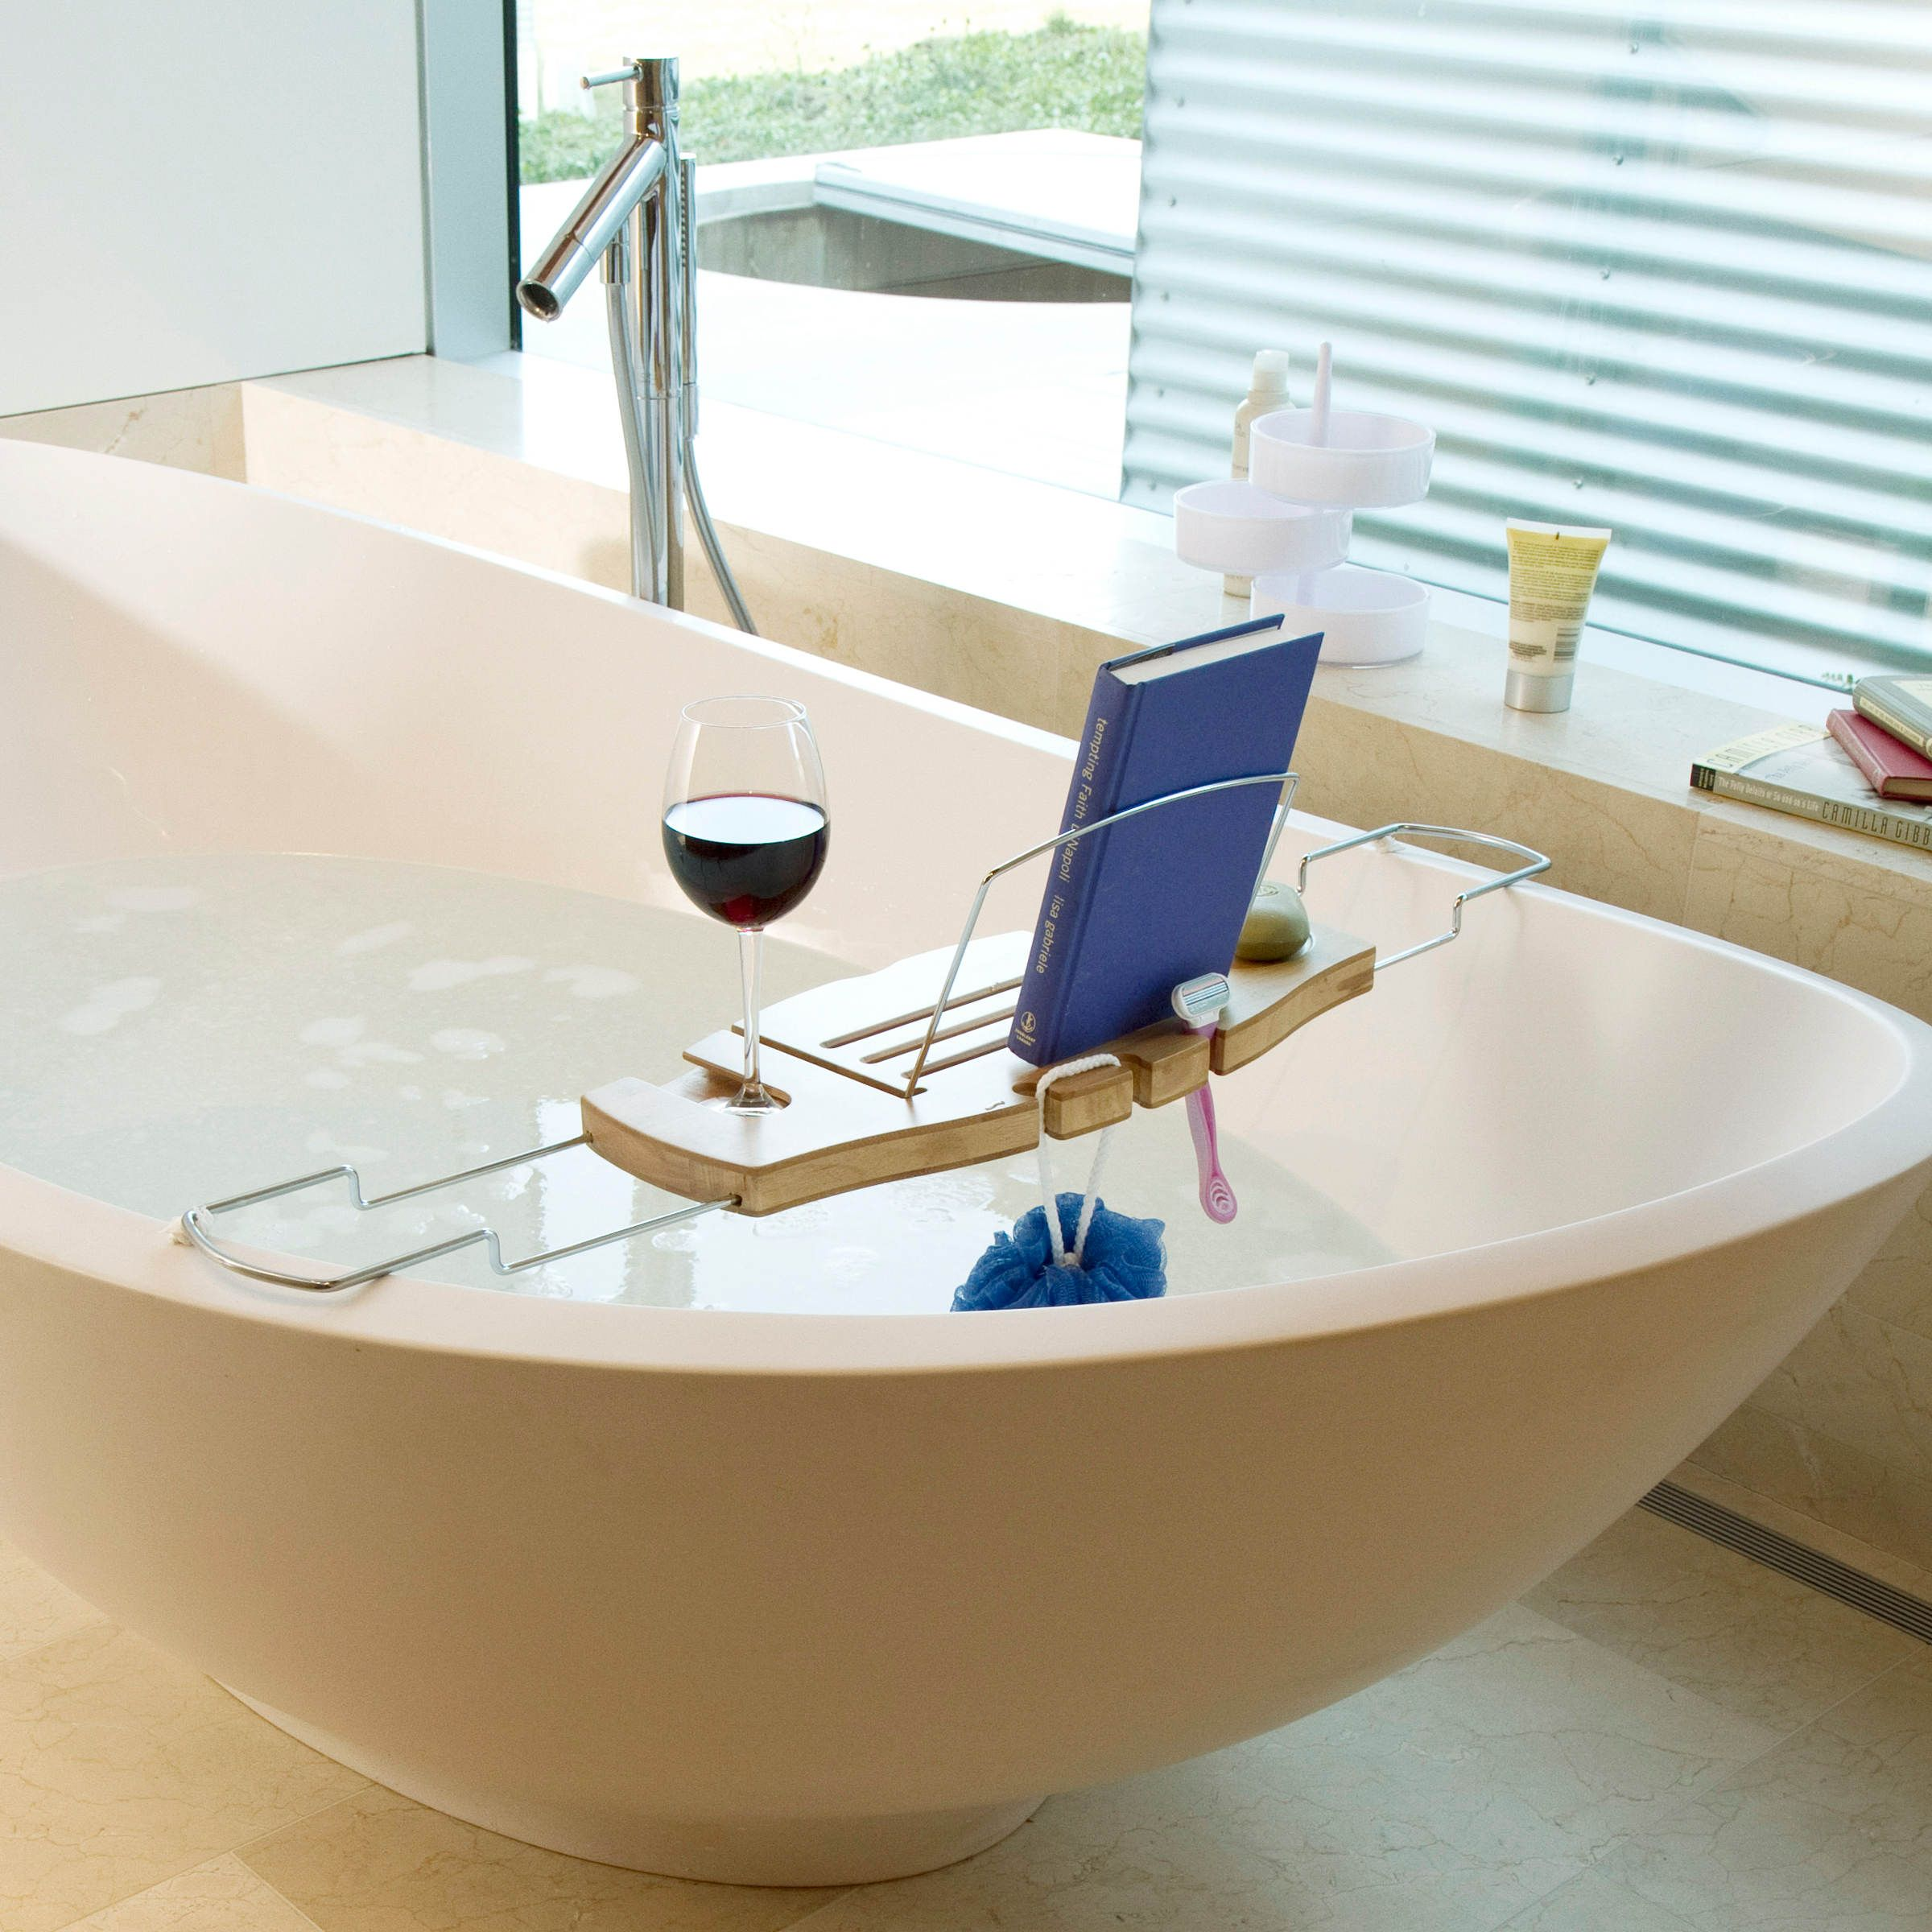 A Way To Relax During Your Bath With Umbra Aquala Bamboo And Chrome Bathtub Caddy